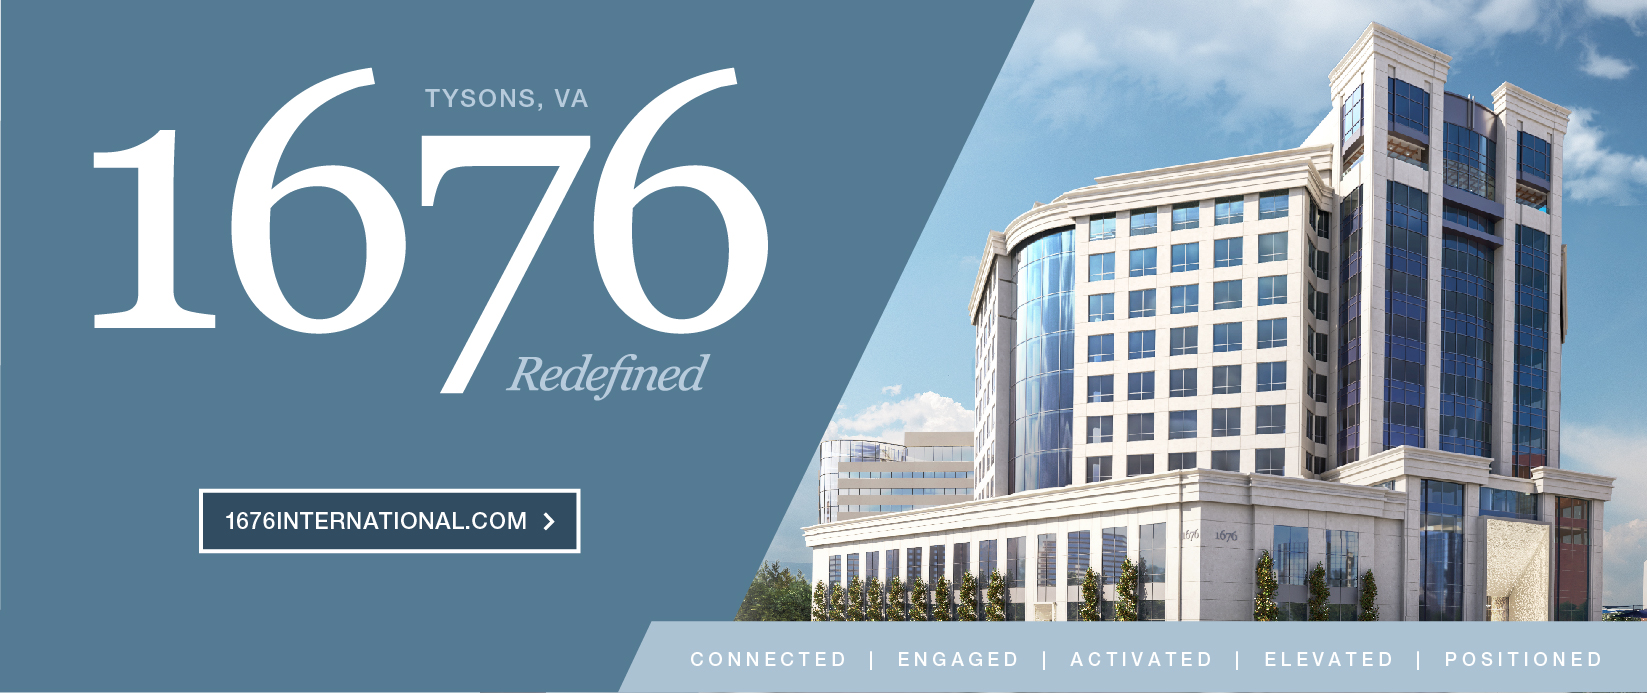 1676 Redefined